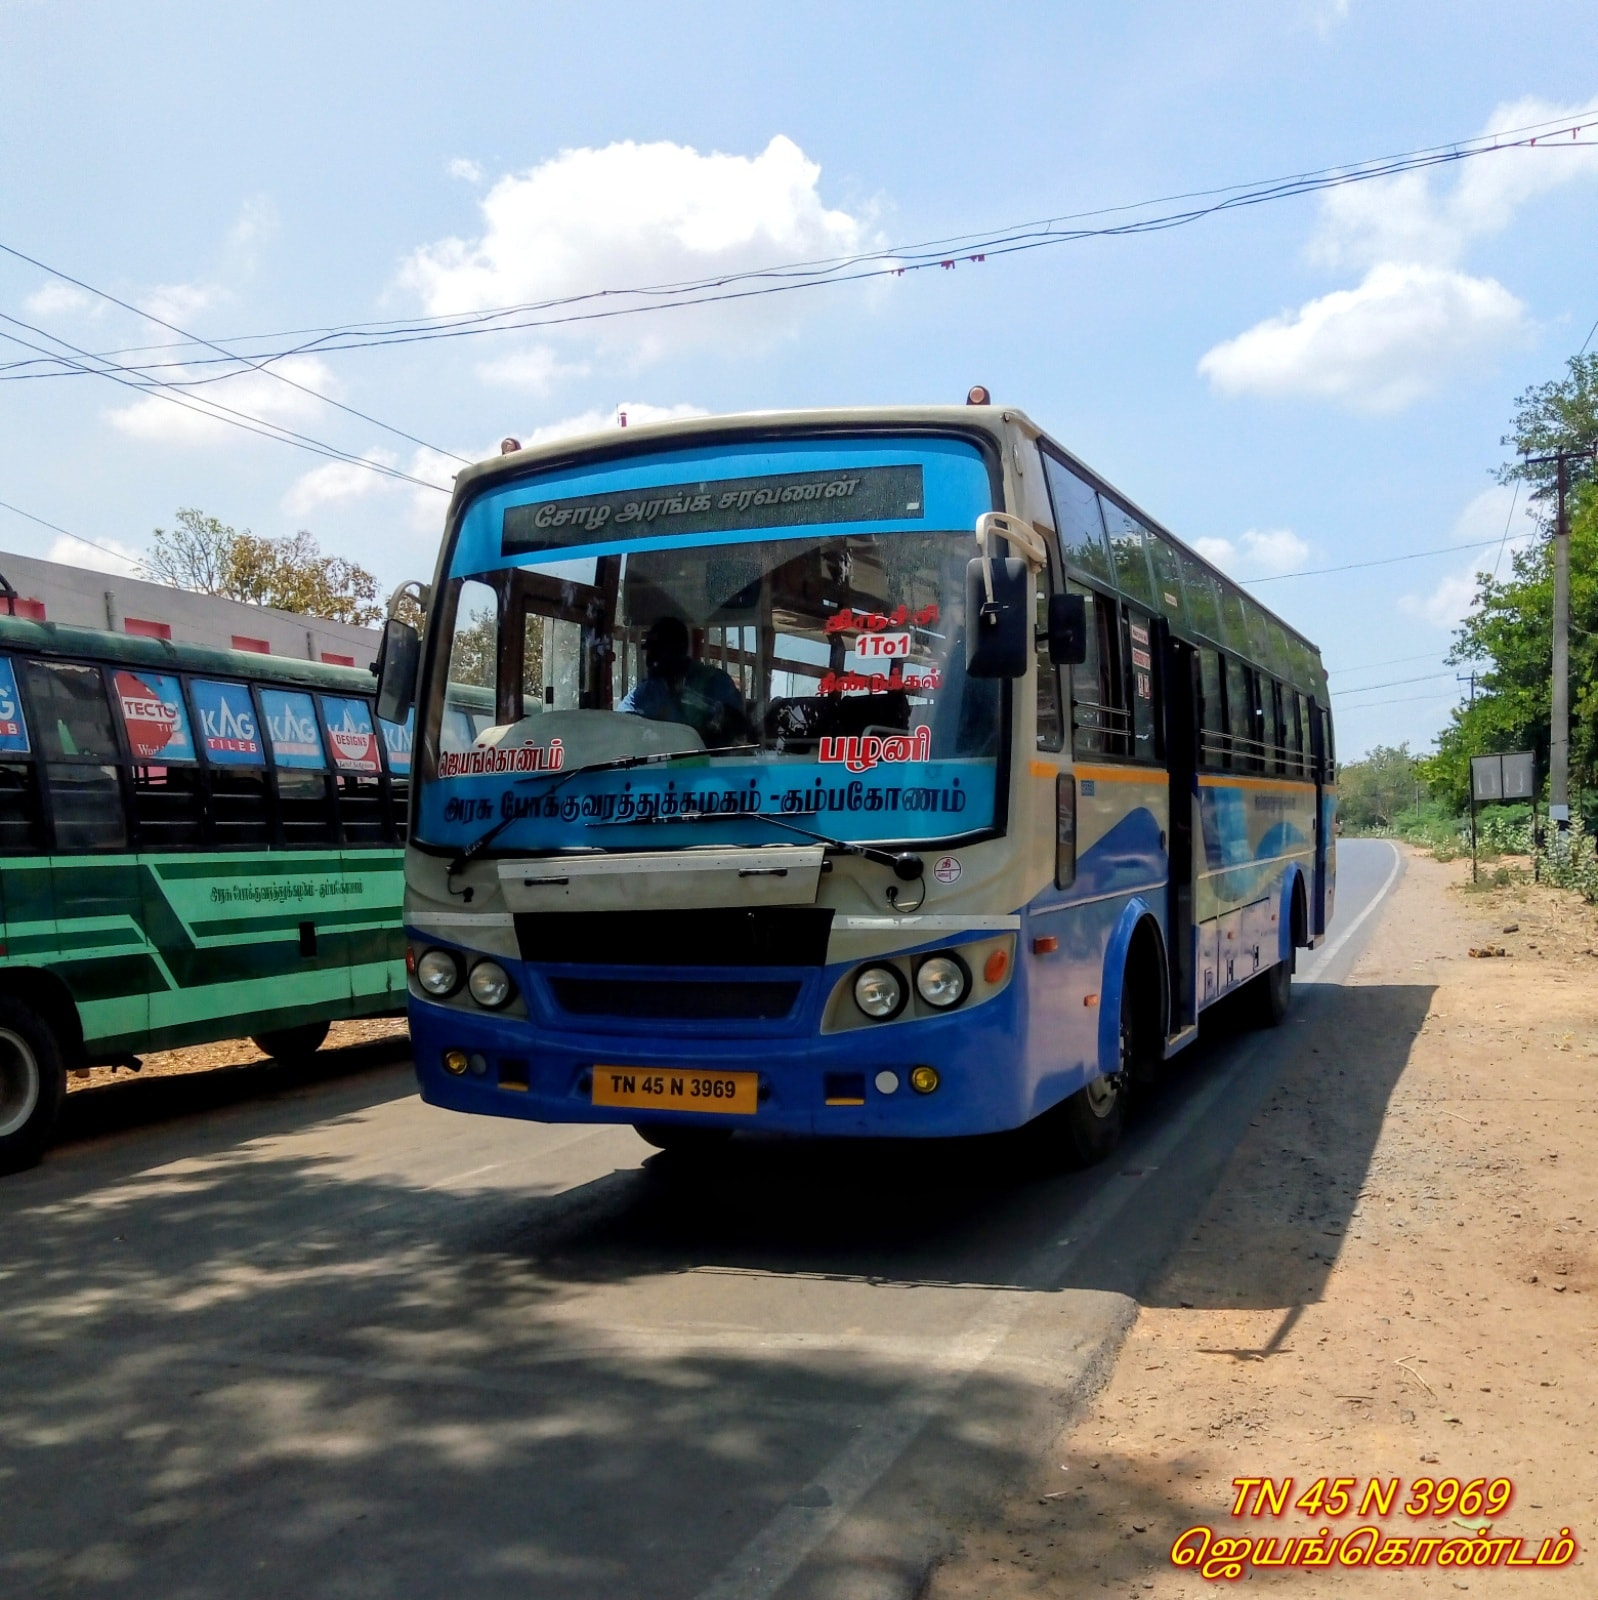 TNSTC Bus Timings From Mysore to Salem